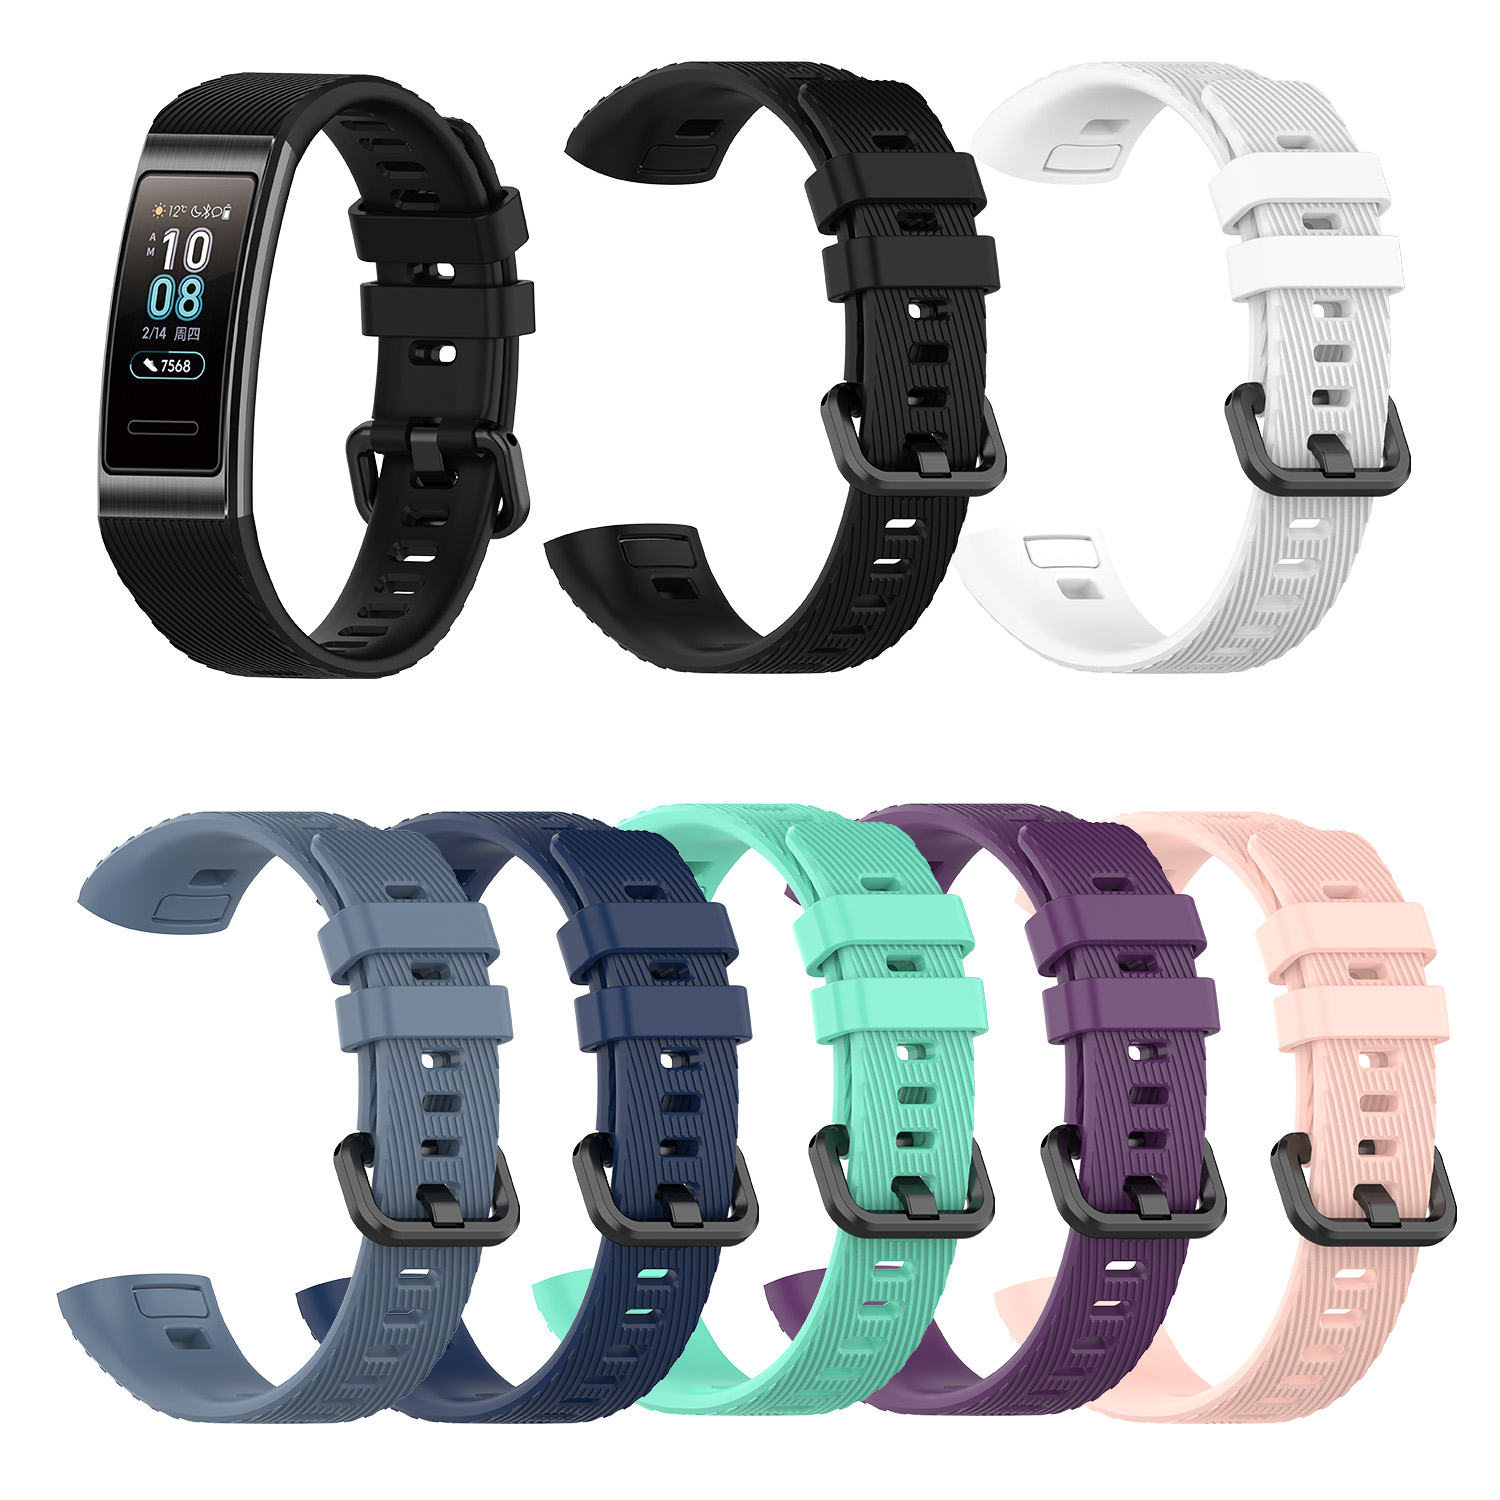 For Huawei 3 Band 3 Pro New Replacement Band Silicone Bracelet Wristband Strap